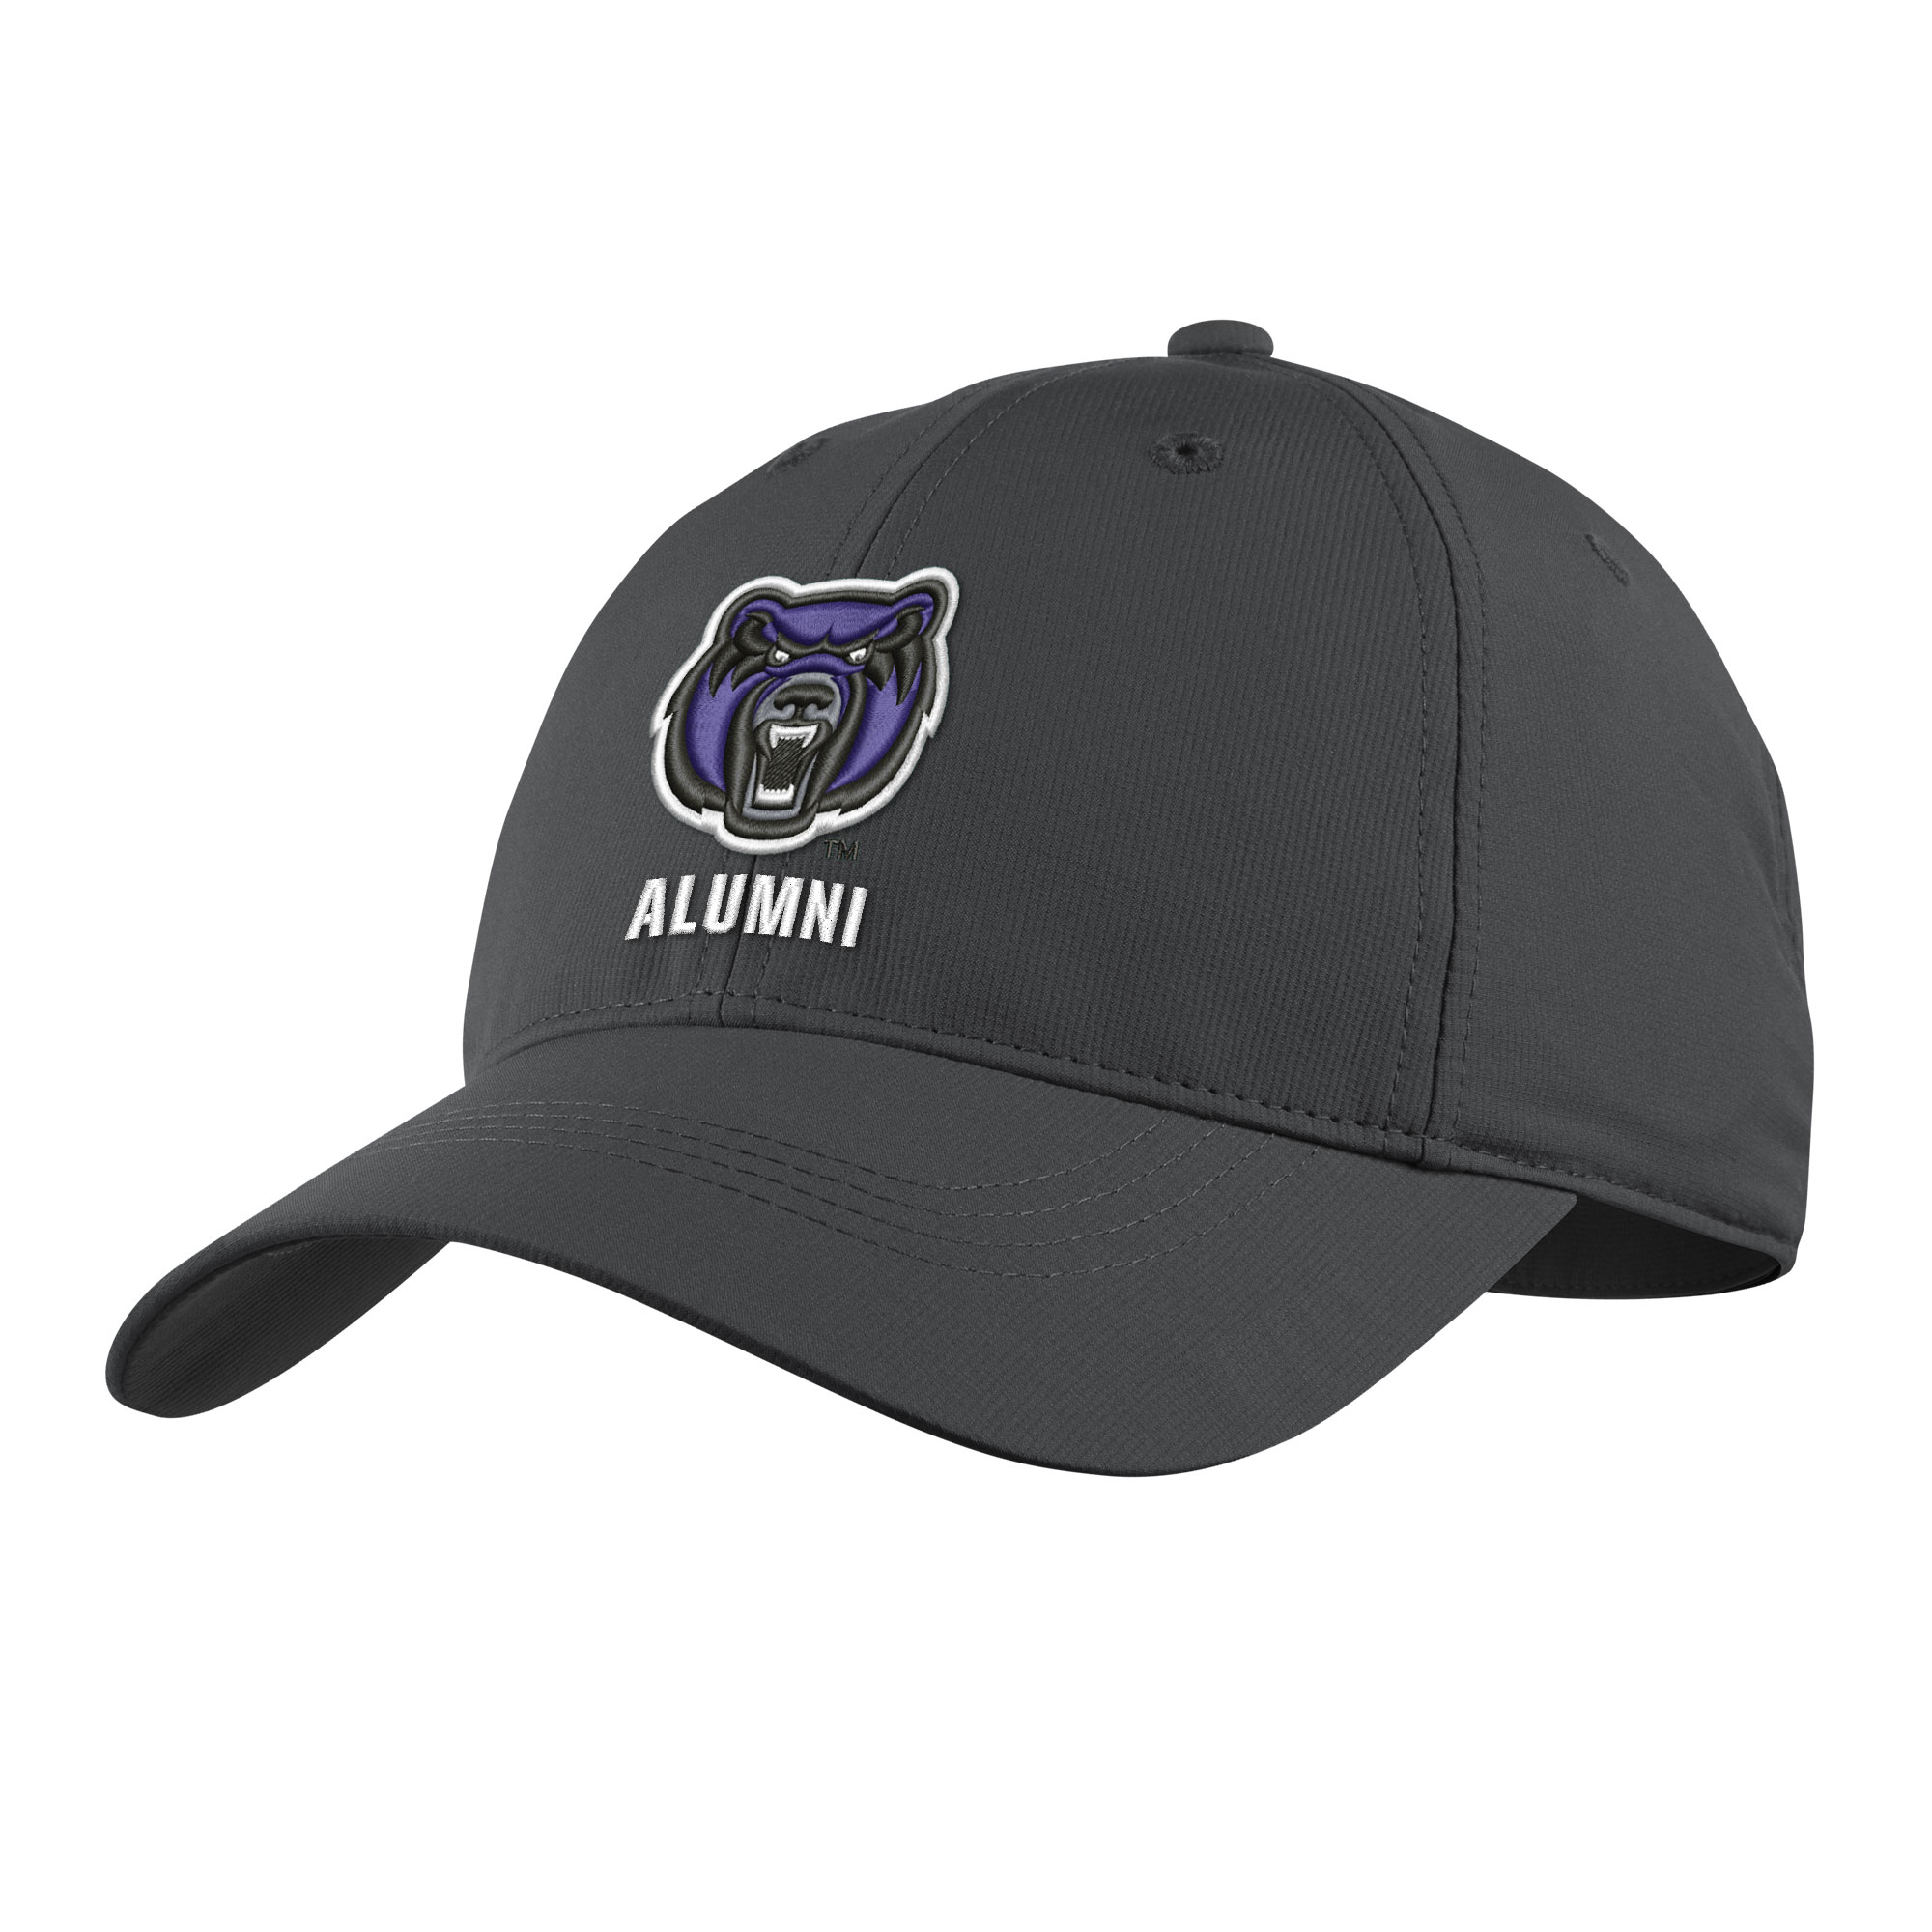 Alumni Golf L91 Tech Cap